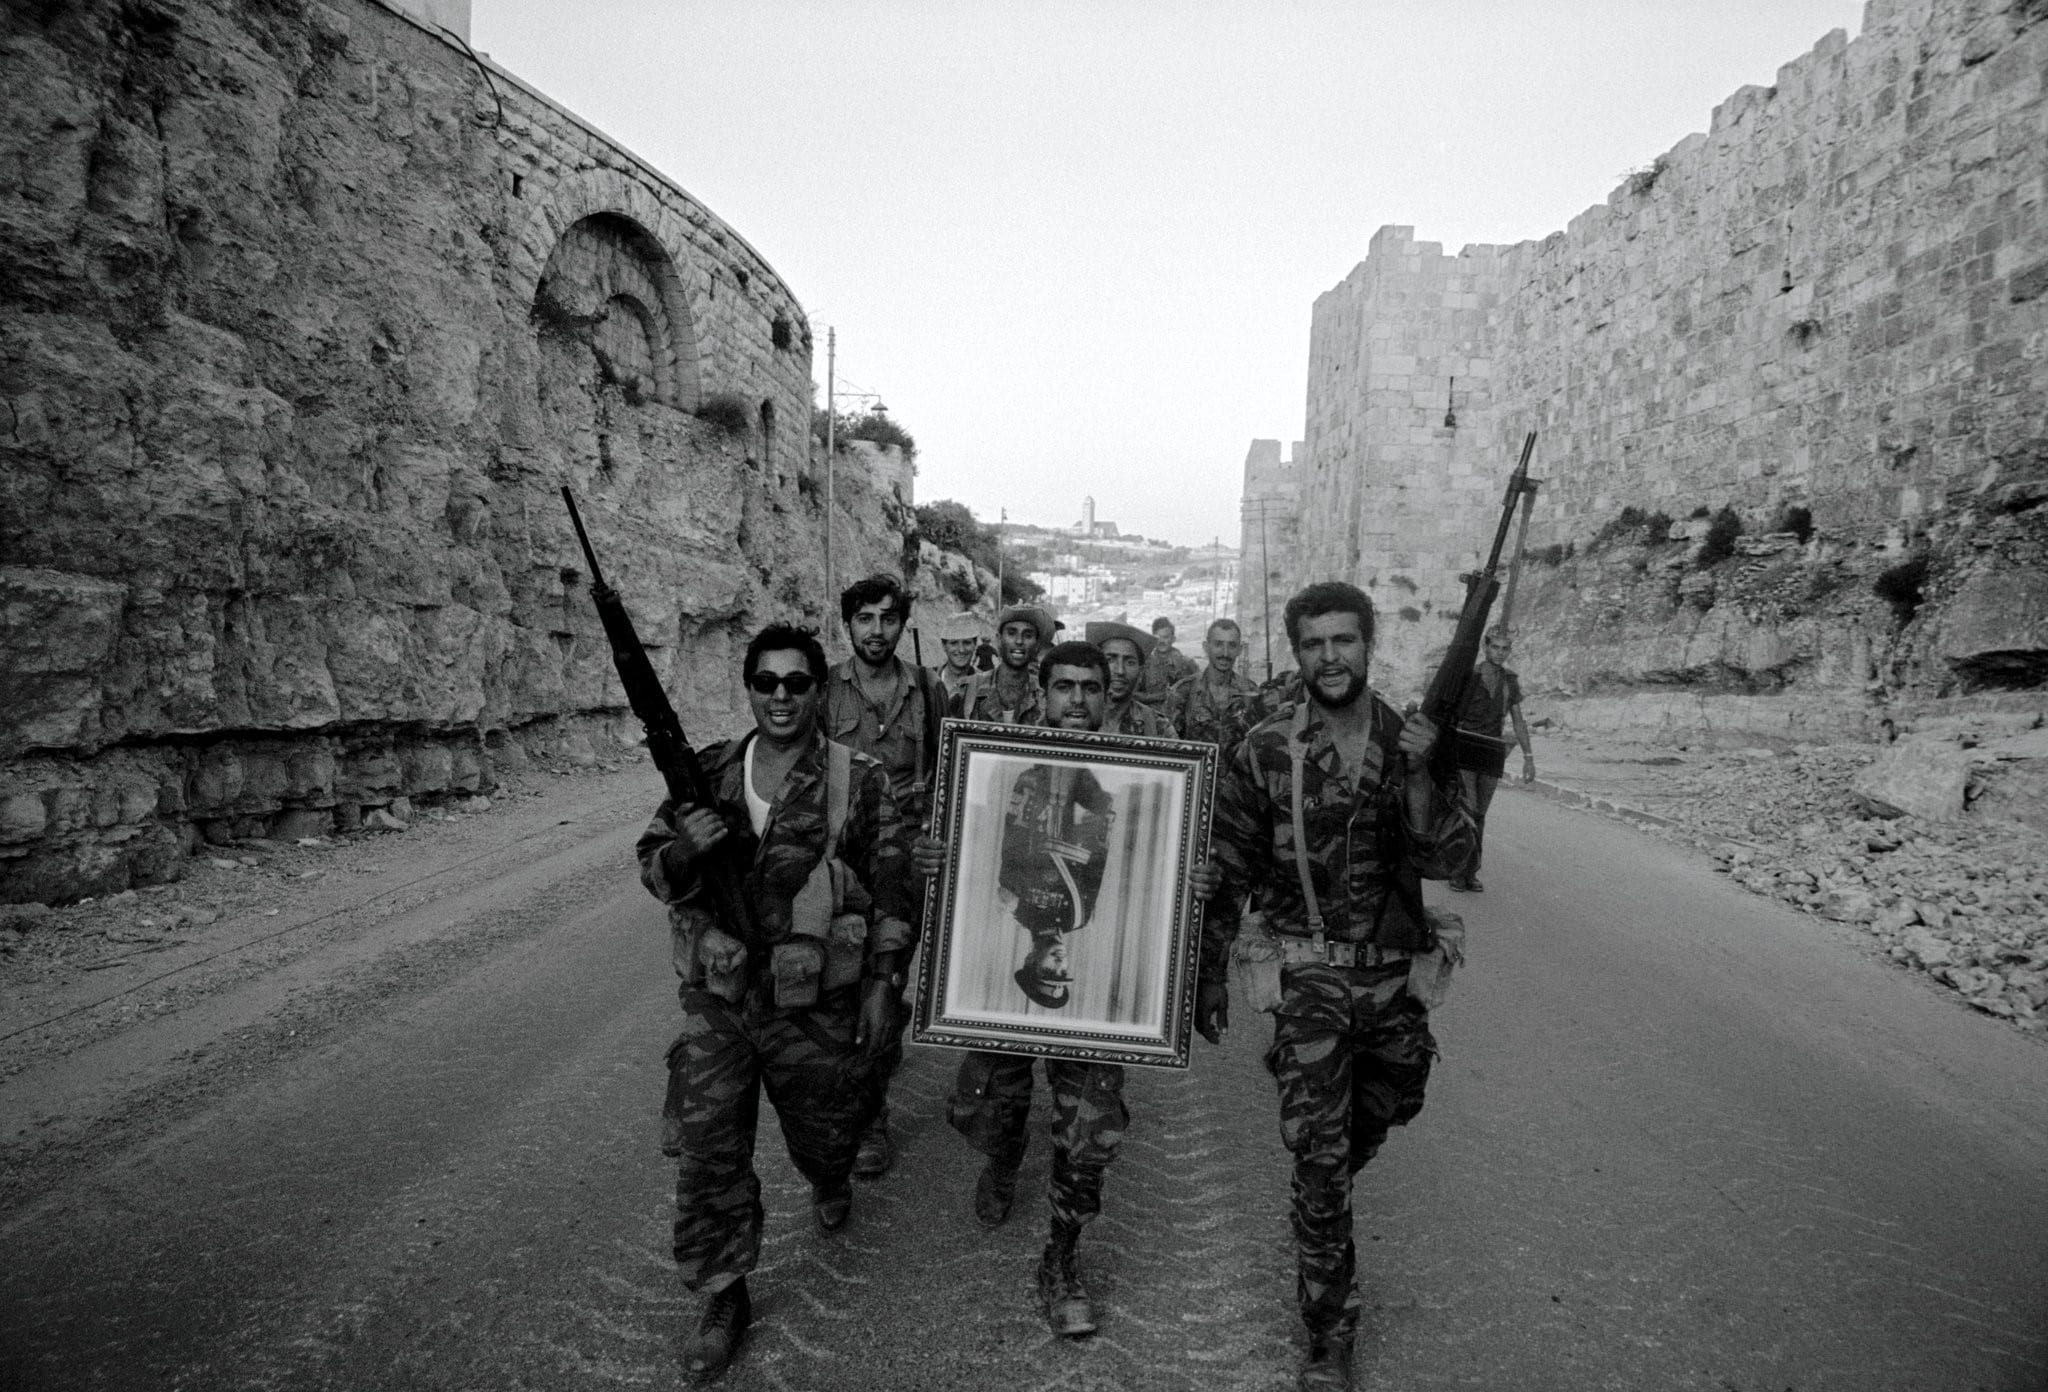 Image [After Israel seized East Jerusalem in 1967, its soldiers carried a confiscated portrait of King Hussein of Jordan. Credit: Leonard Freed / Magnum Photos]